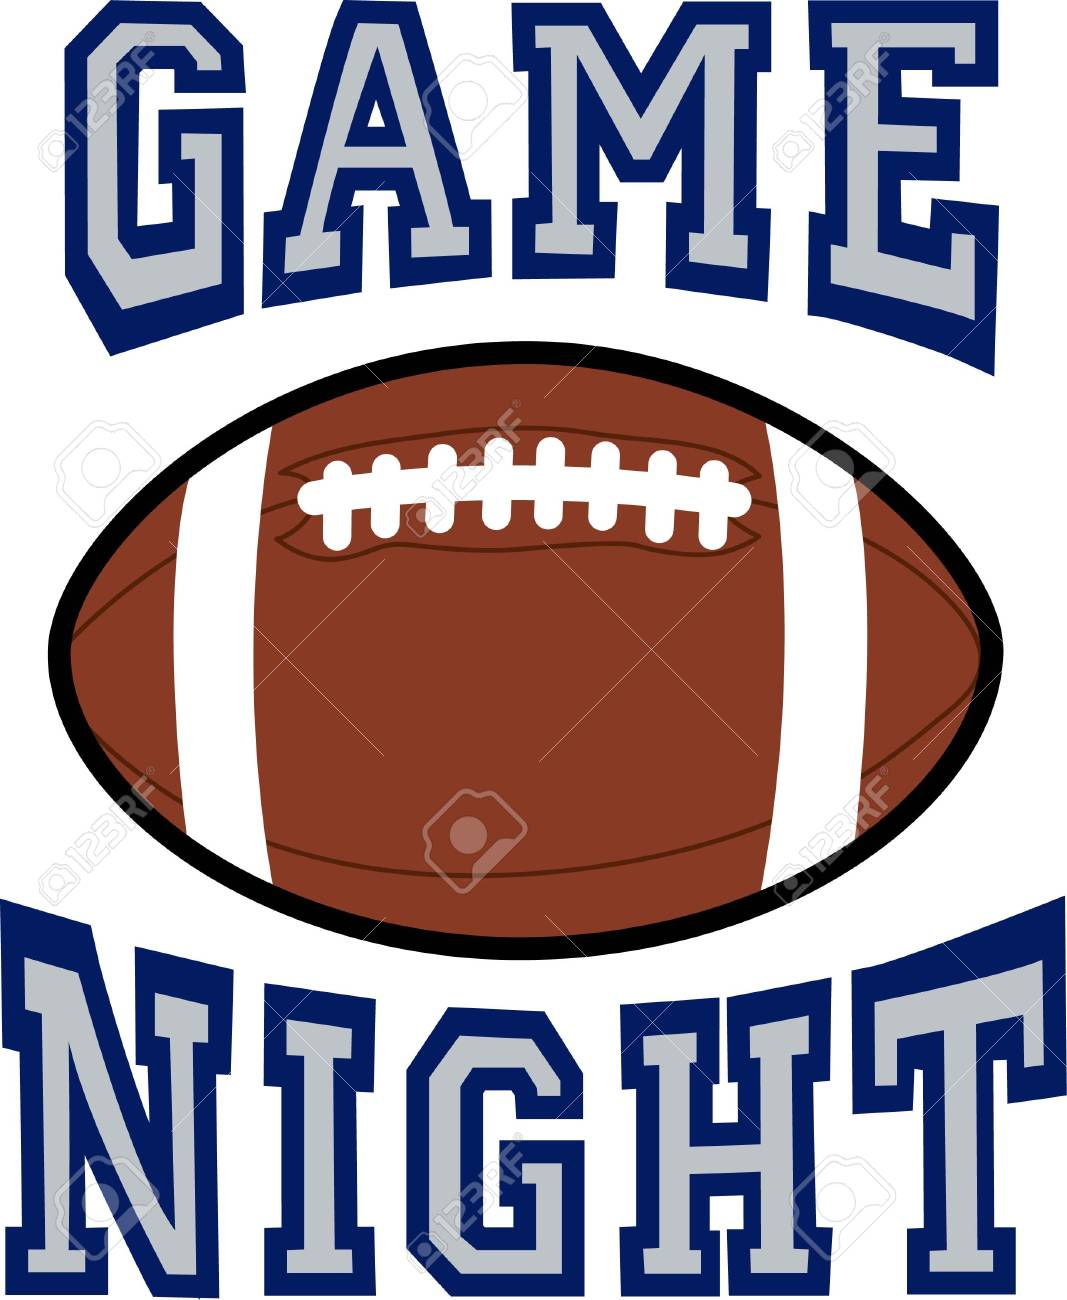 Sports Fans Will Enjoy A Football For Game Day Royalty Free Cliparts Vectors And Stock Illustration Image 45981323